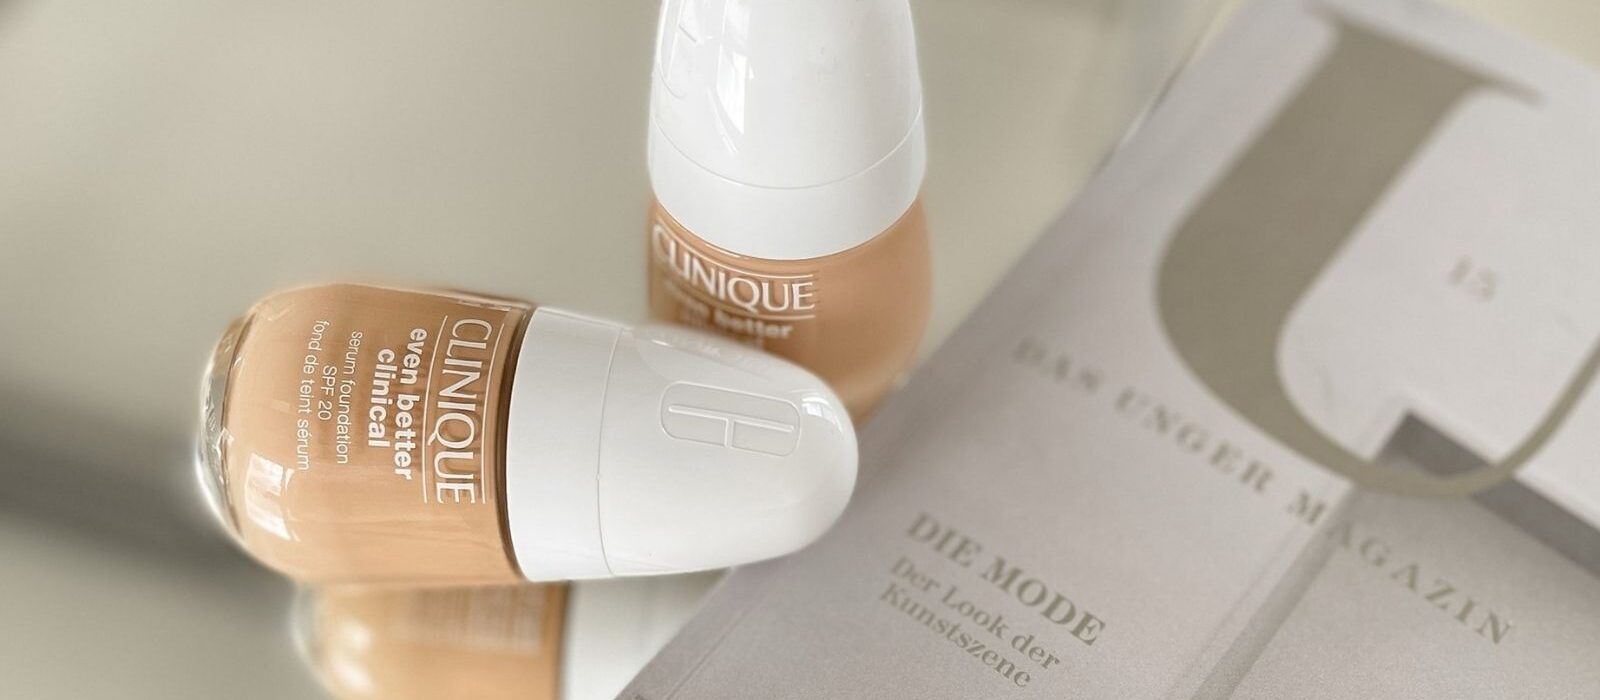 Fondotinta Clinique Even Better Clinical Serum Foundation